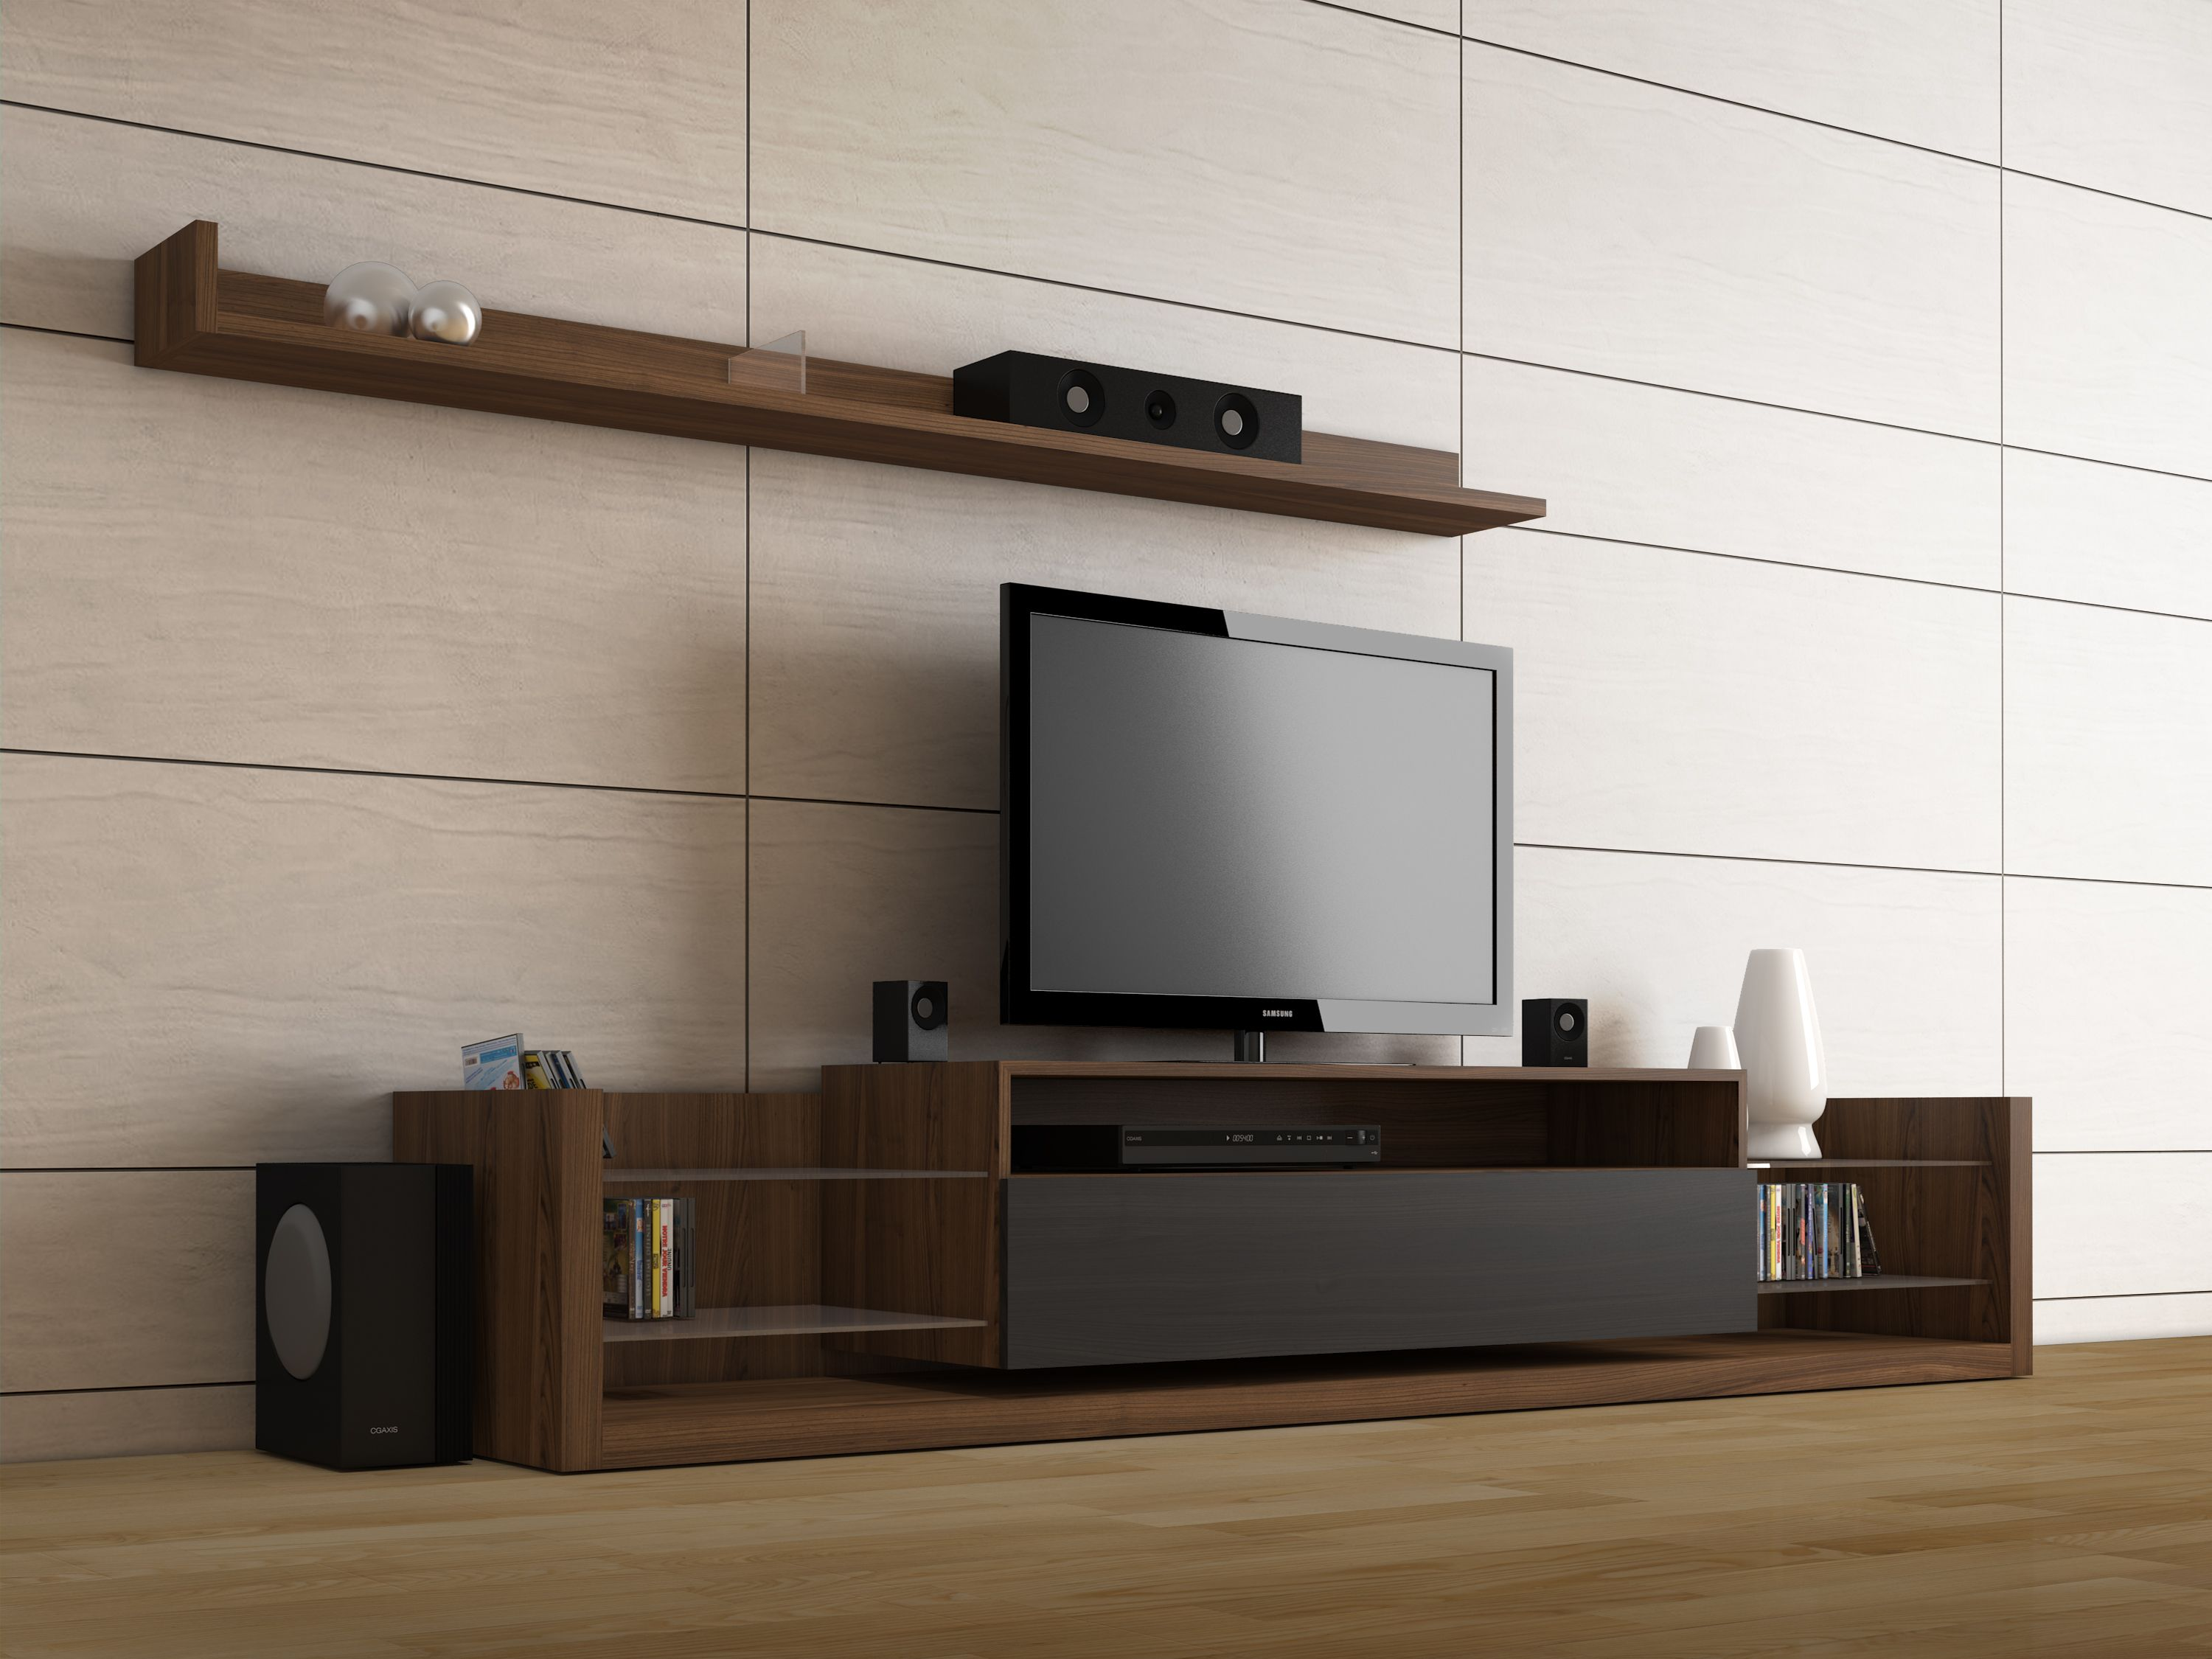 createch design home entertainment unit sophisticated and unique the designs of our 2013 collection will leave no one indifferent by its impression of